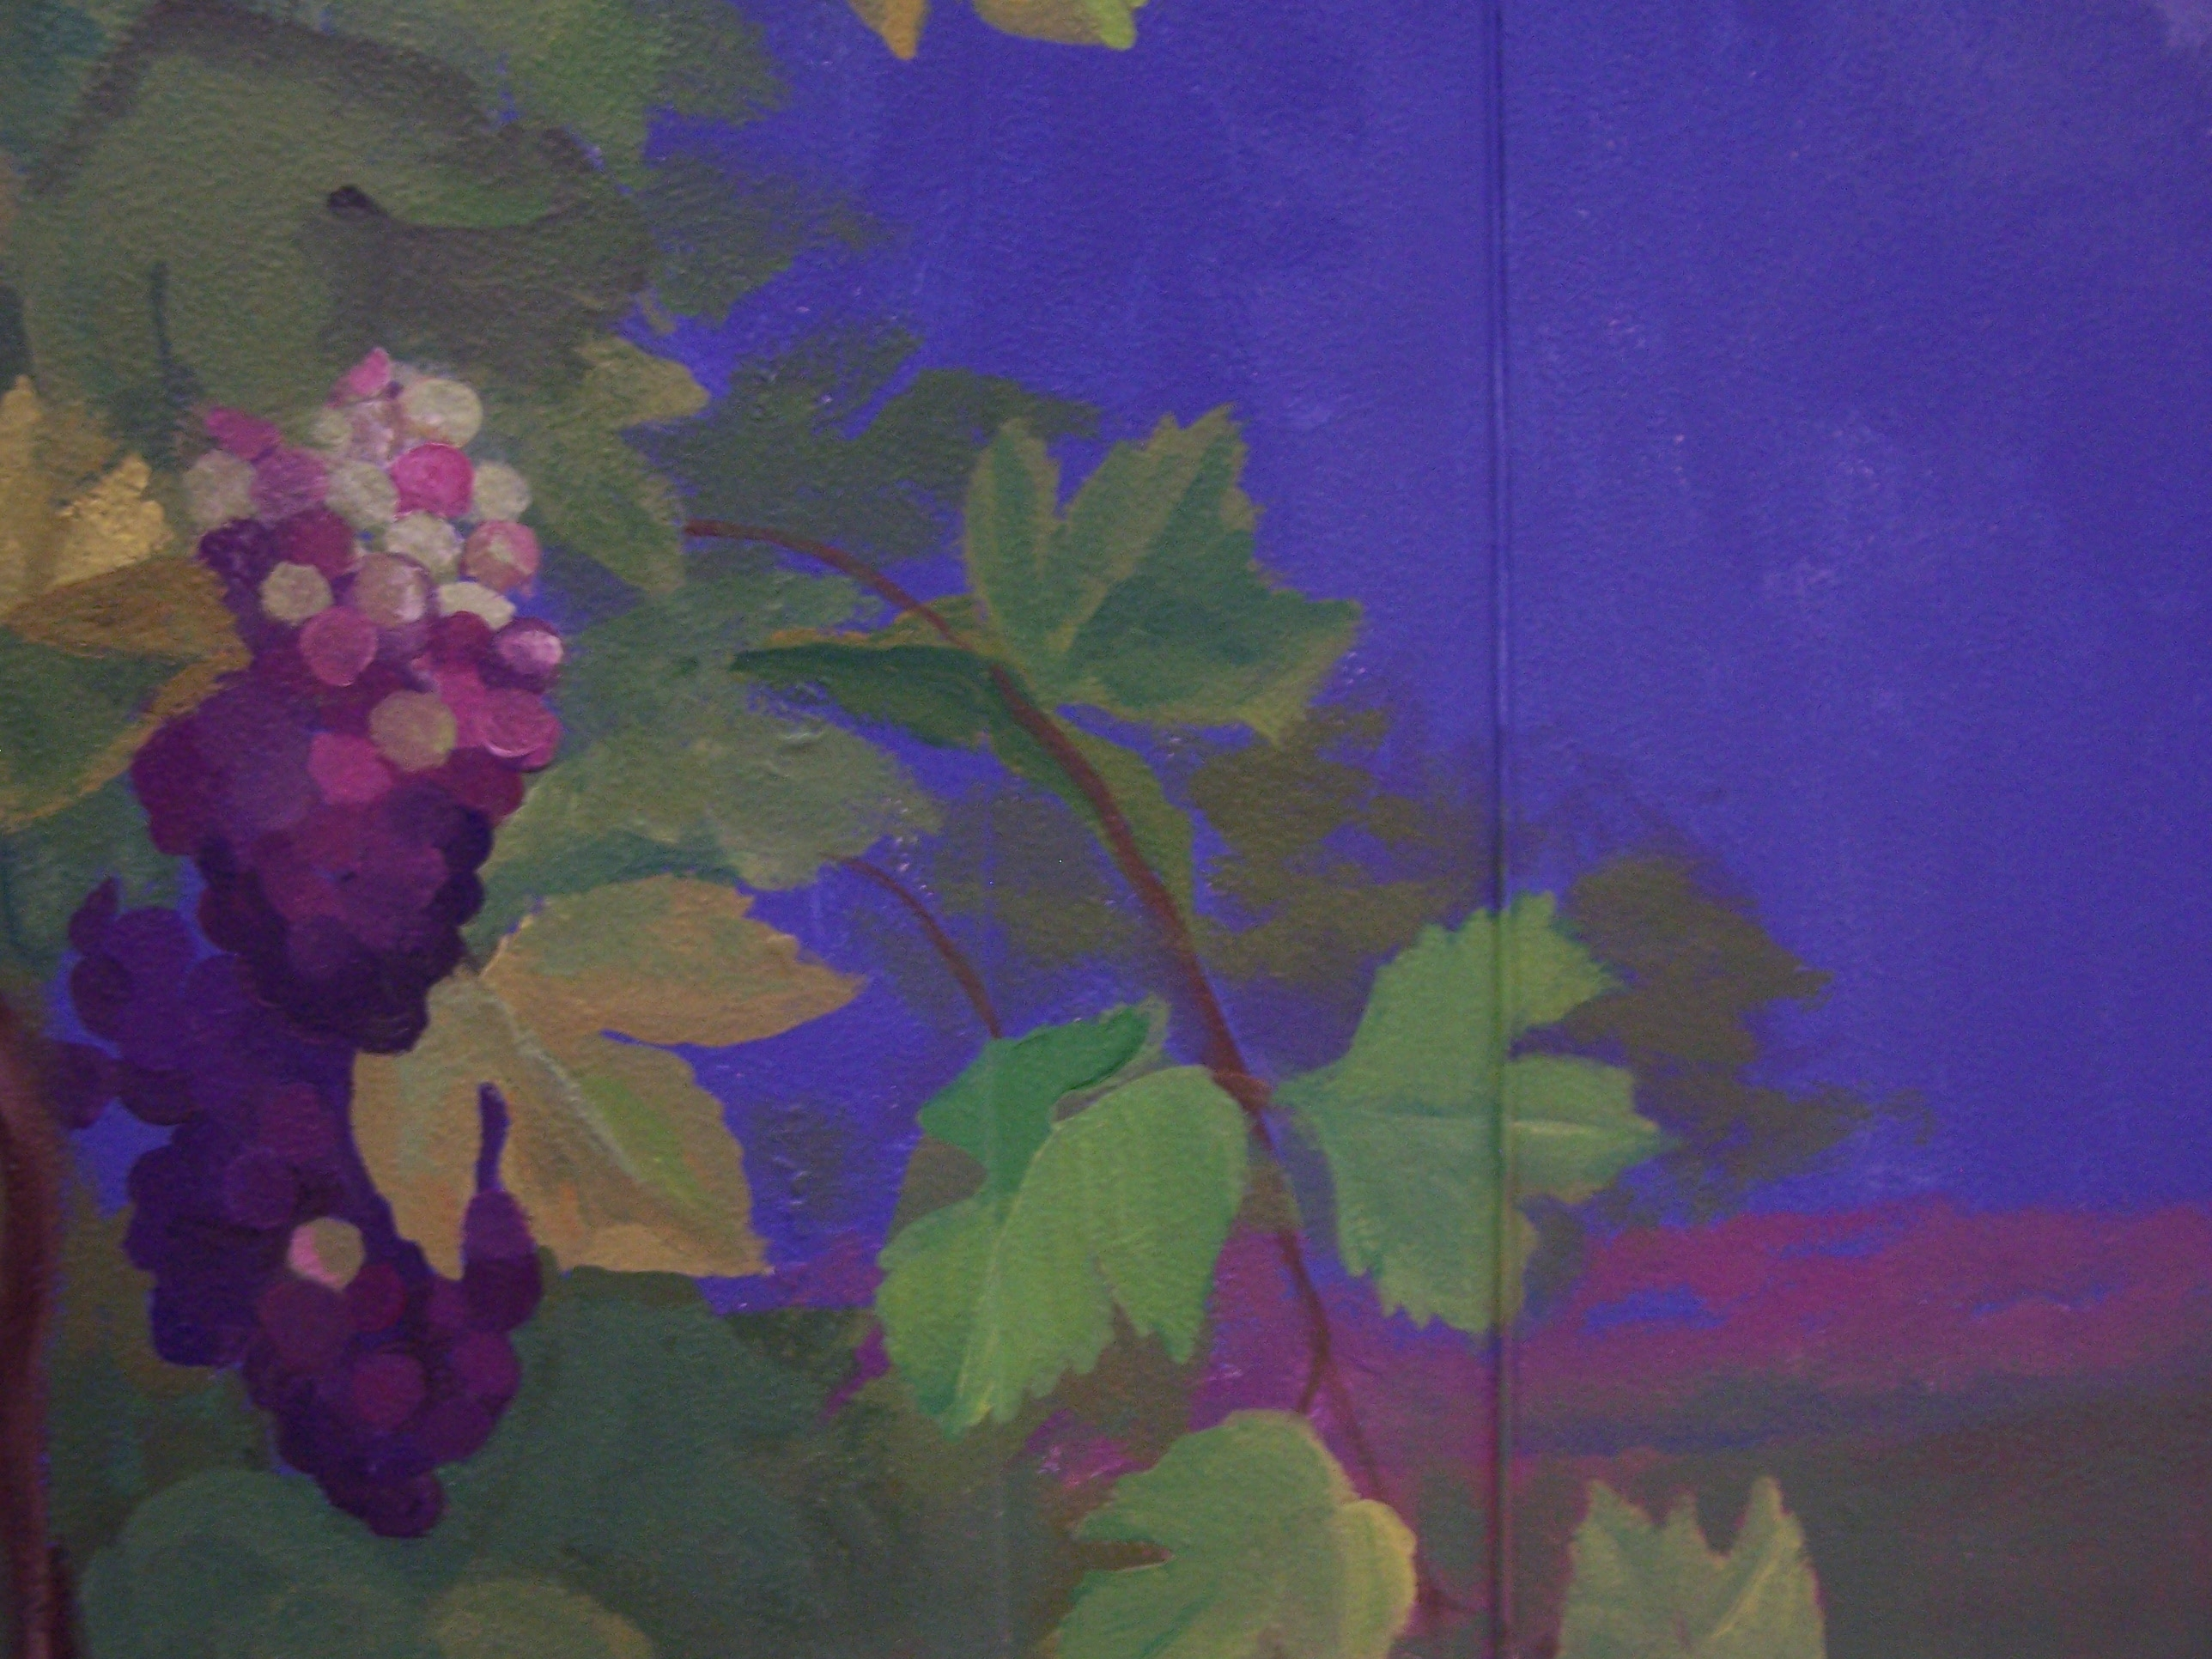 Mural - Grapes too